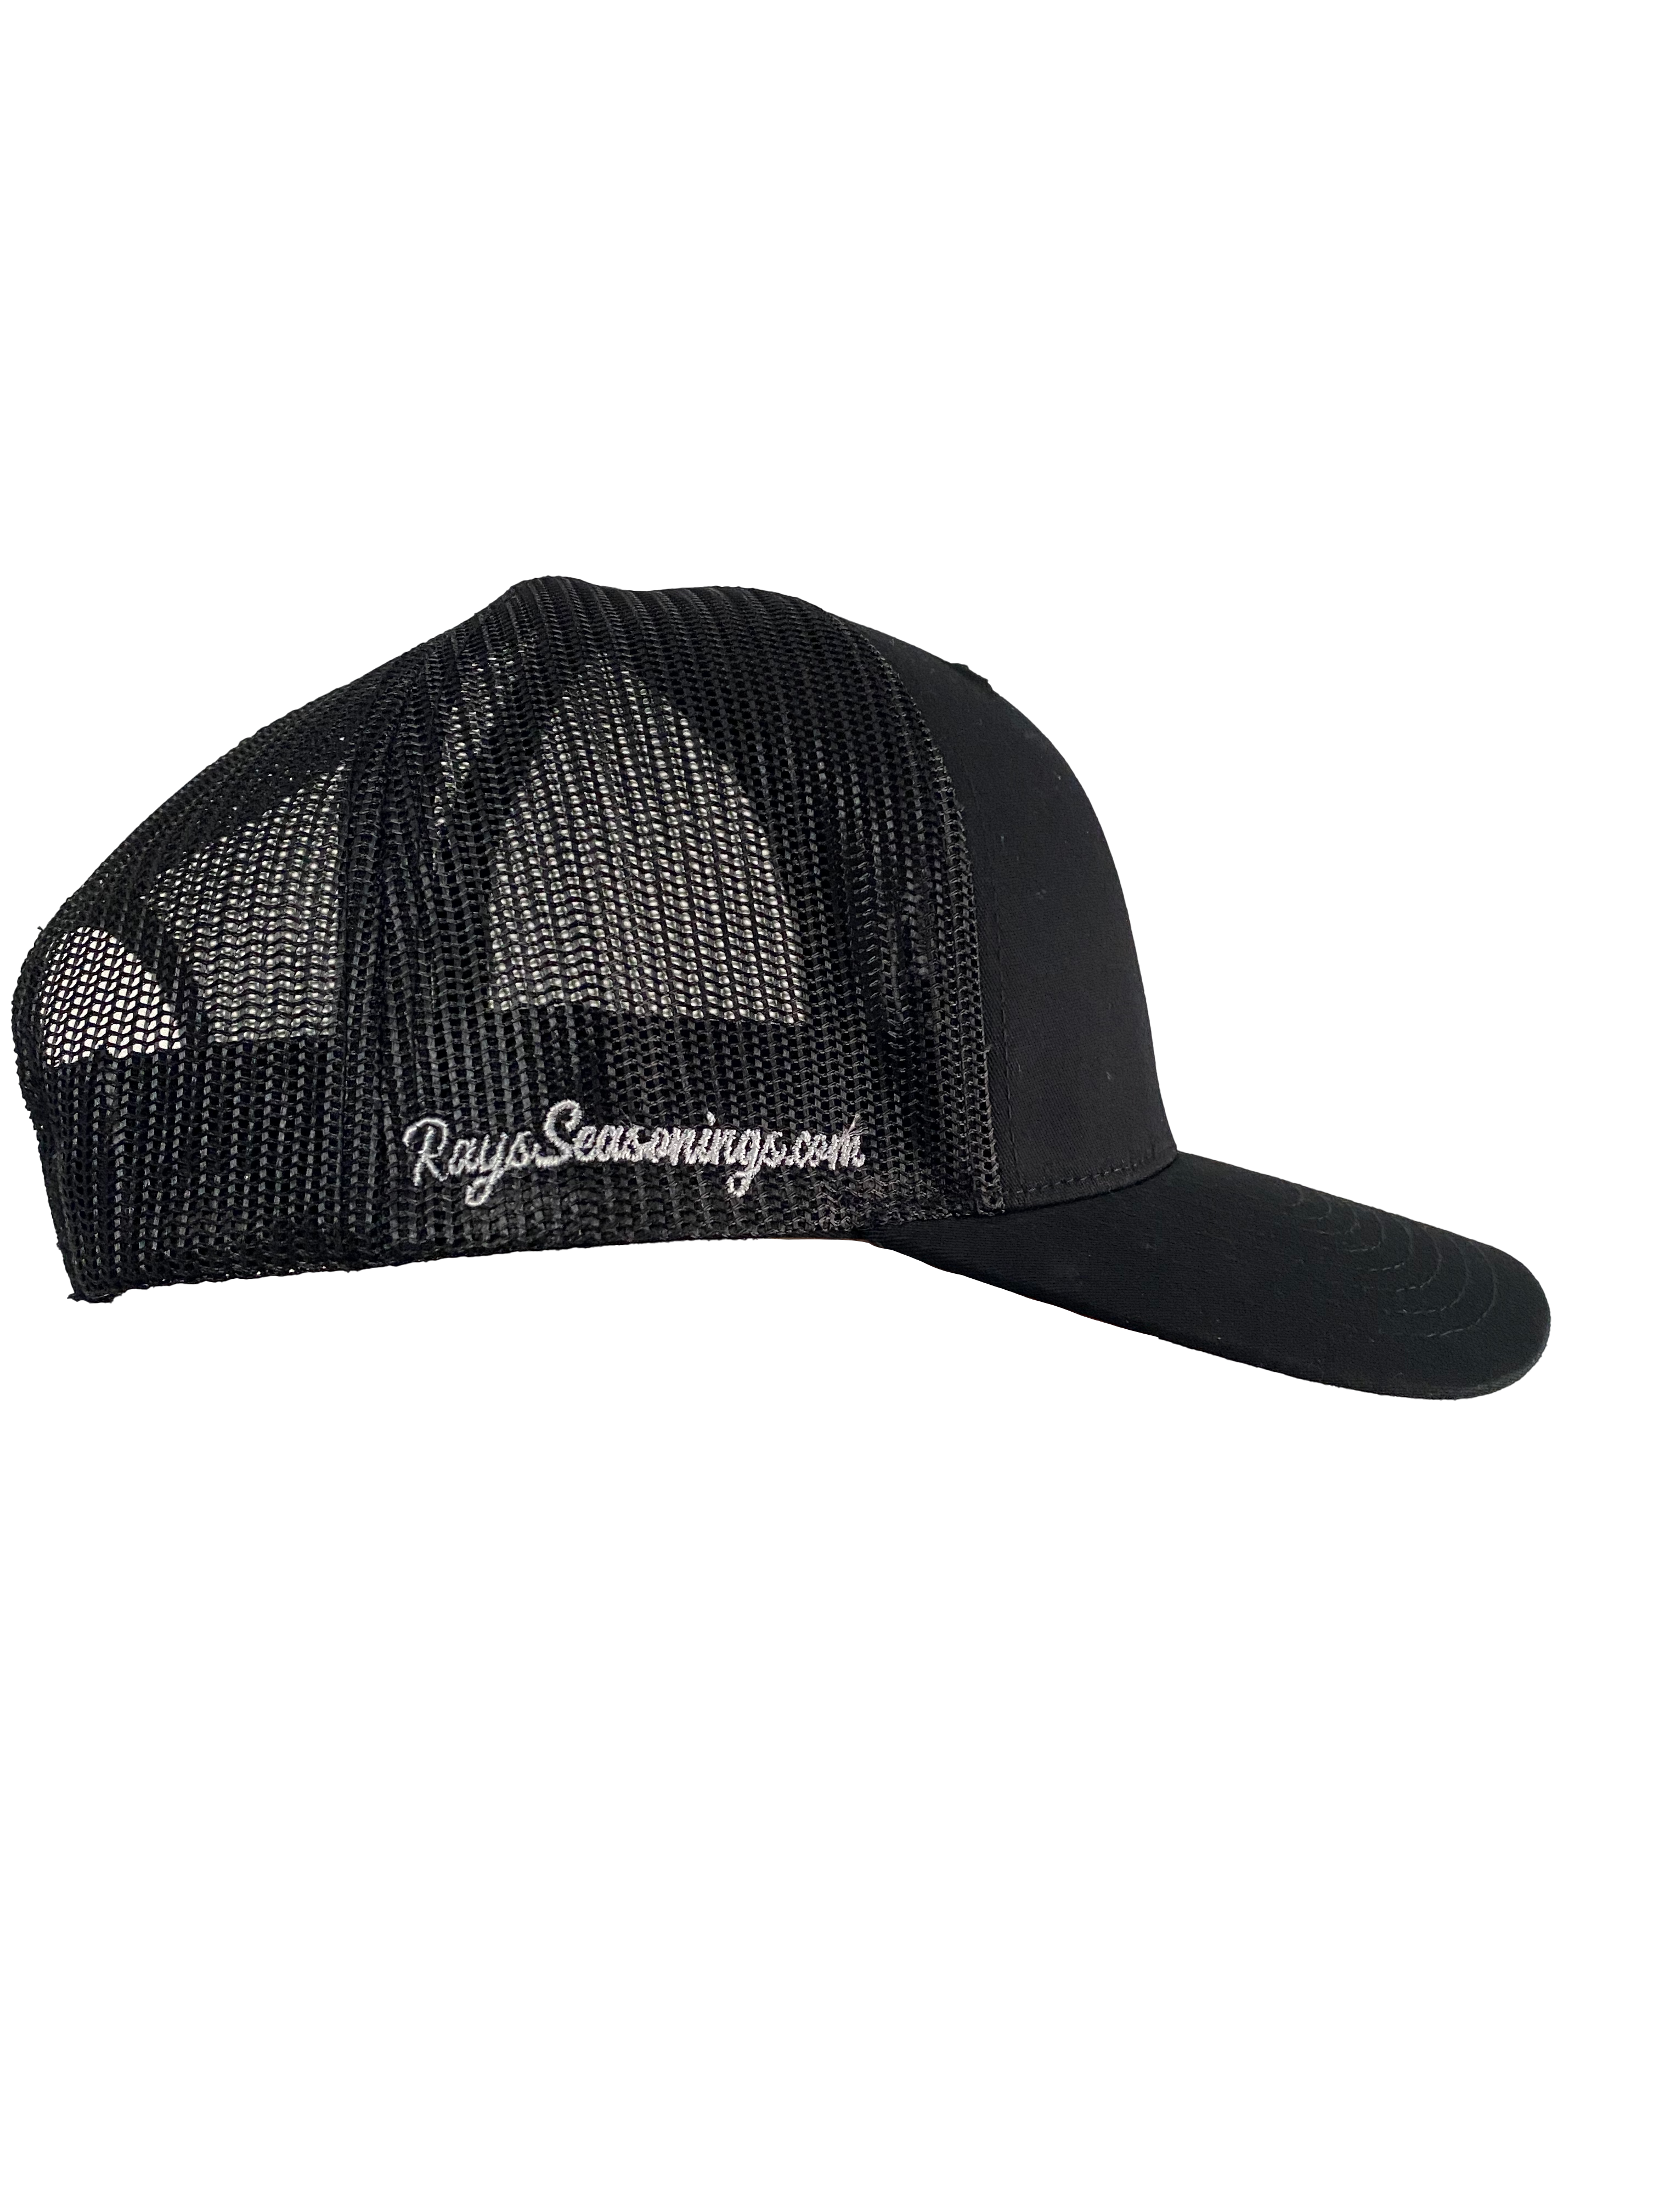 Logo Hat(Black/White)